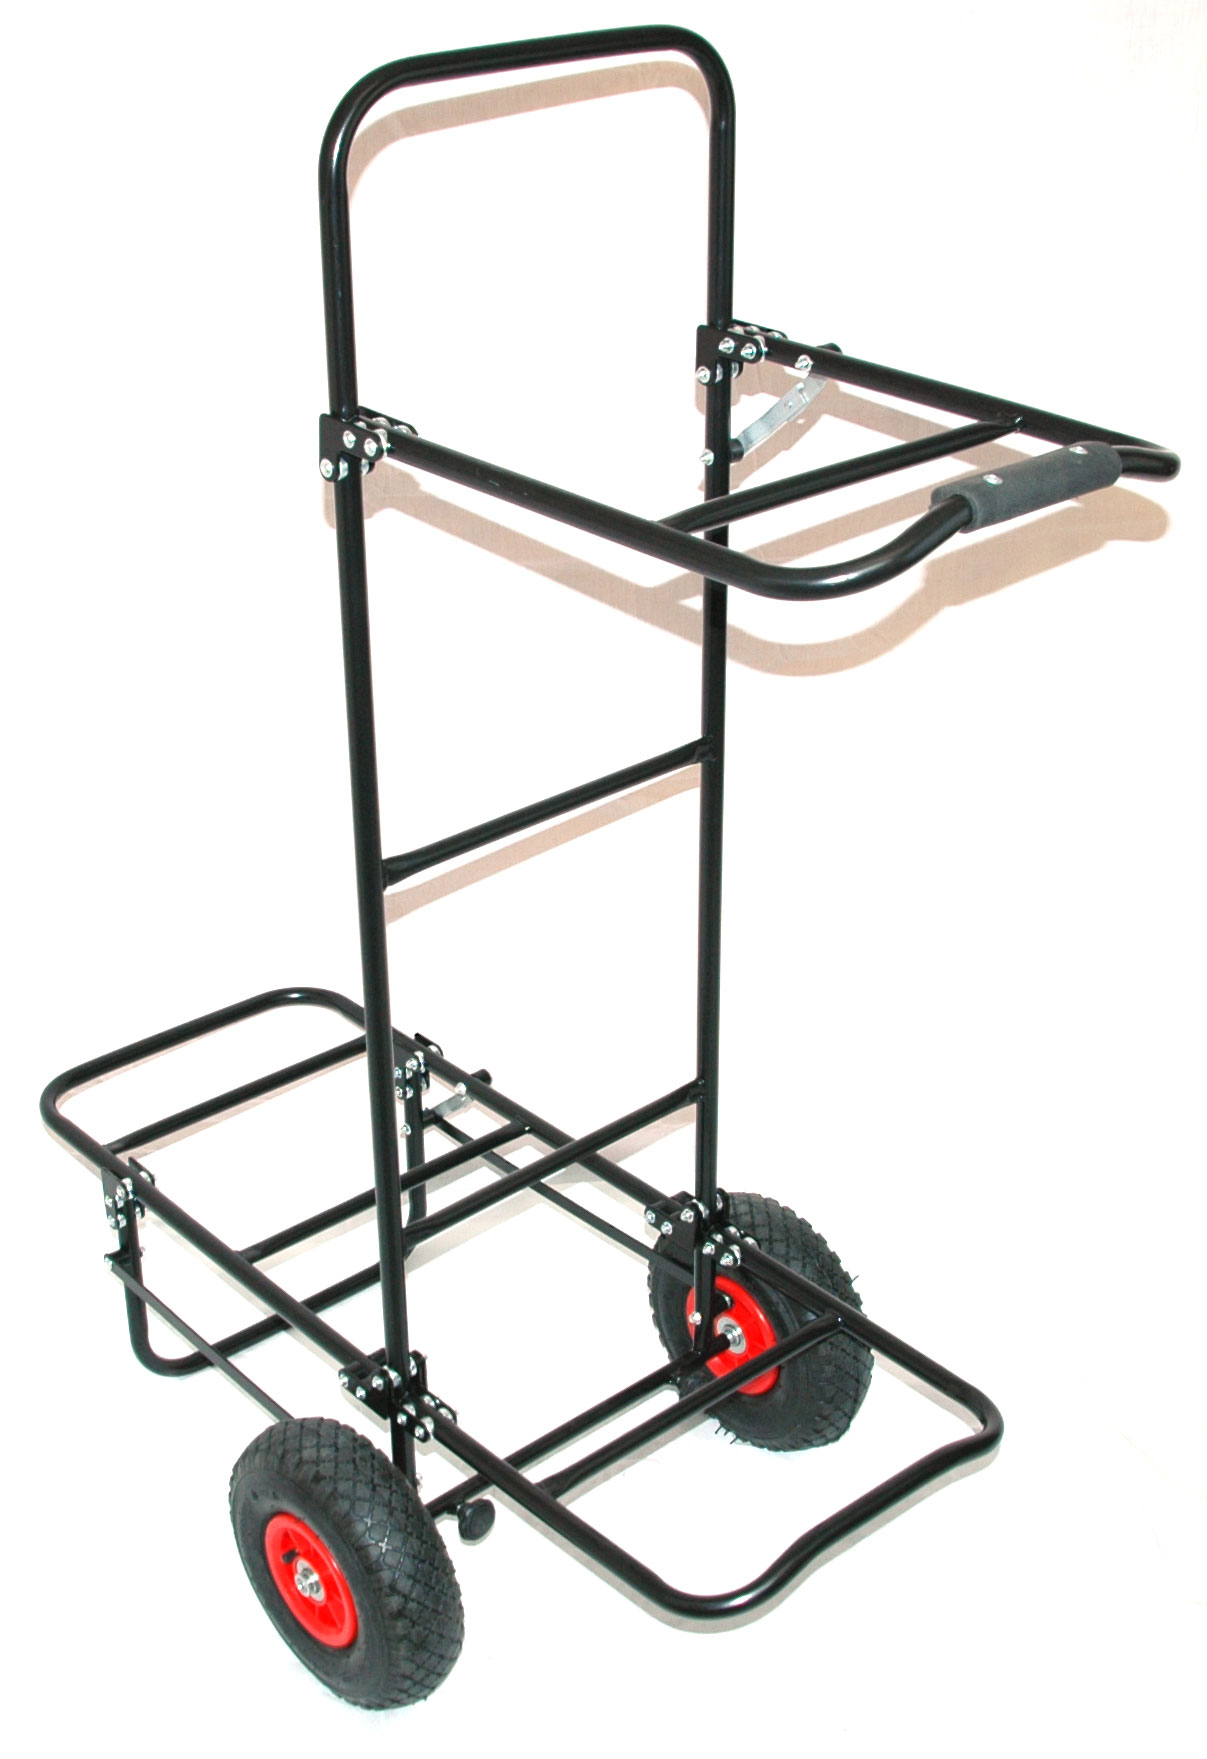 Details about BISON FOLDING FISHING SEAT BOX PULL TROLLEY